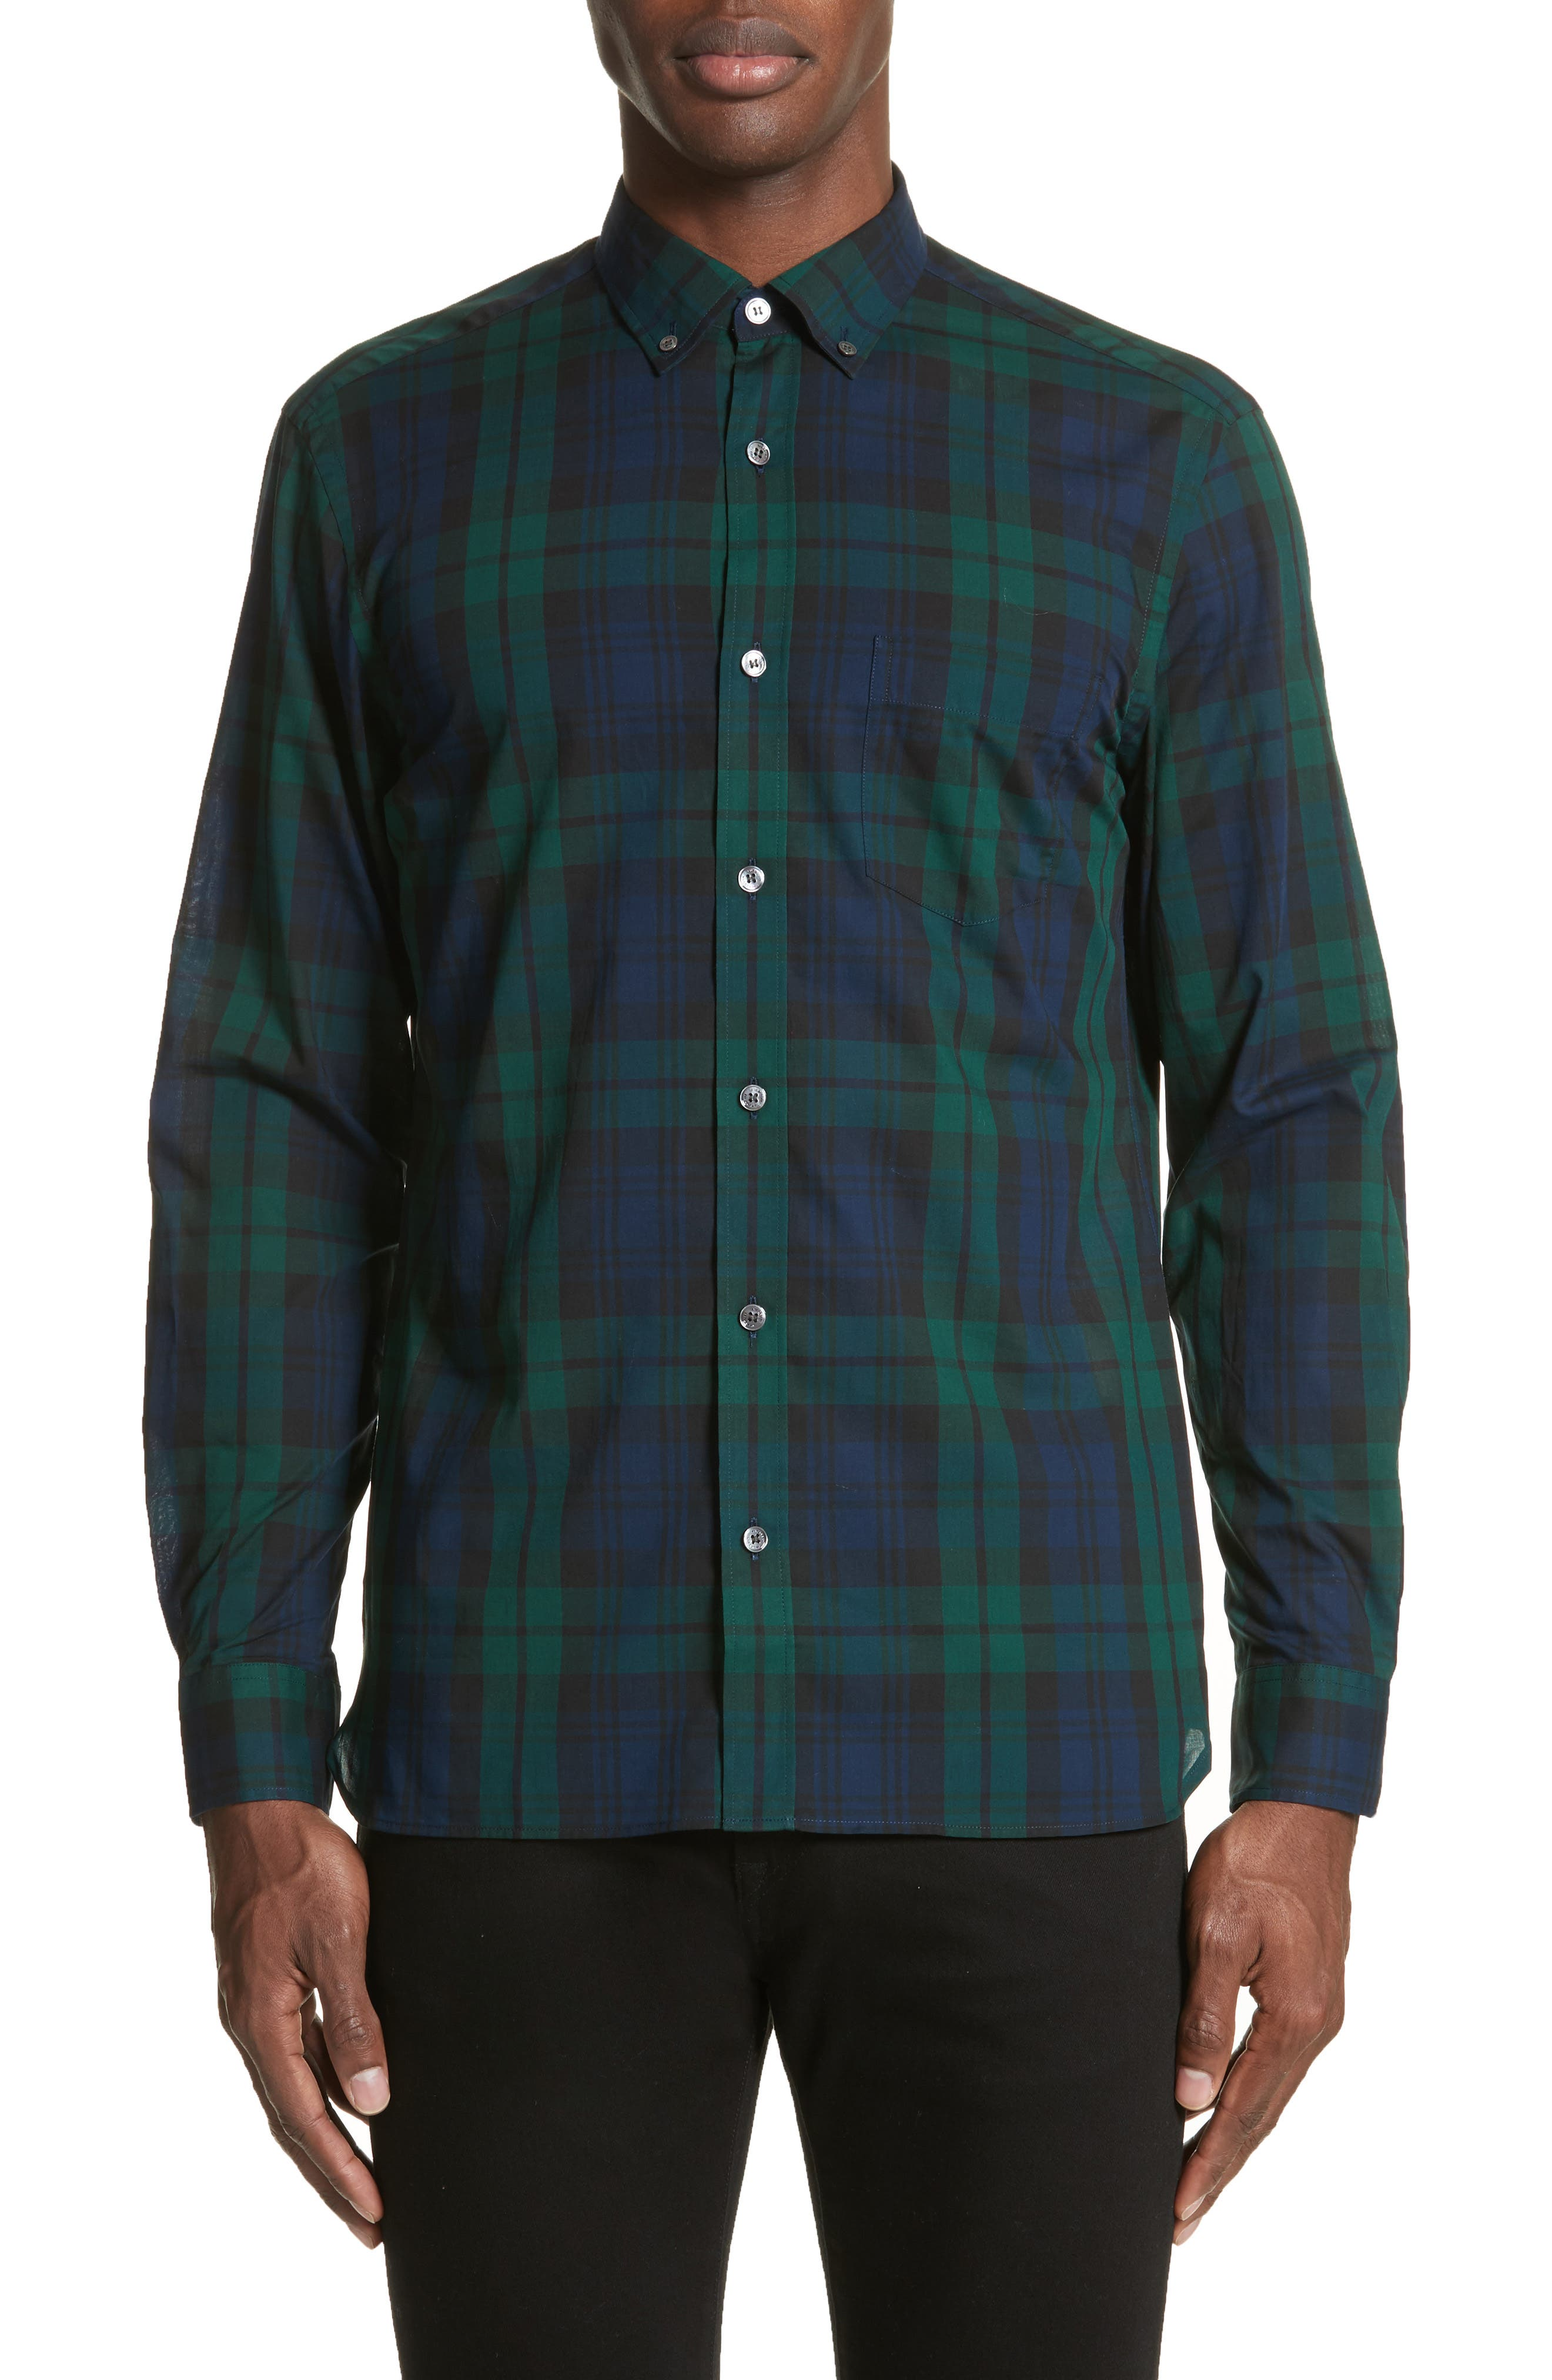 Salwick Tartan Plaid Sport Shirt,                         Main,                         color, Navy